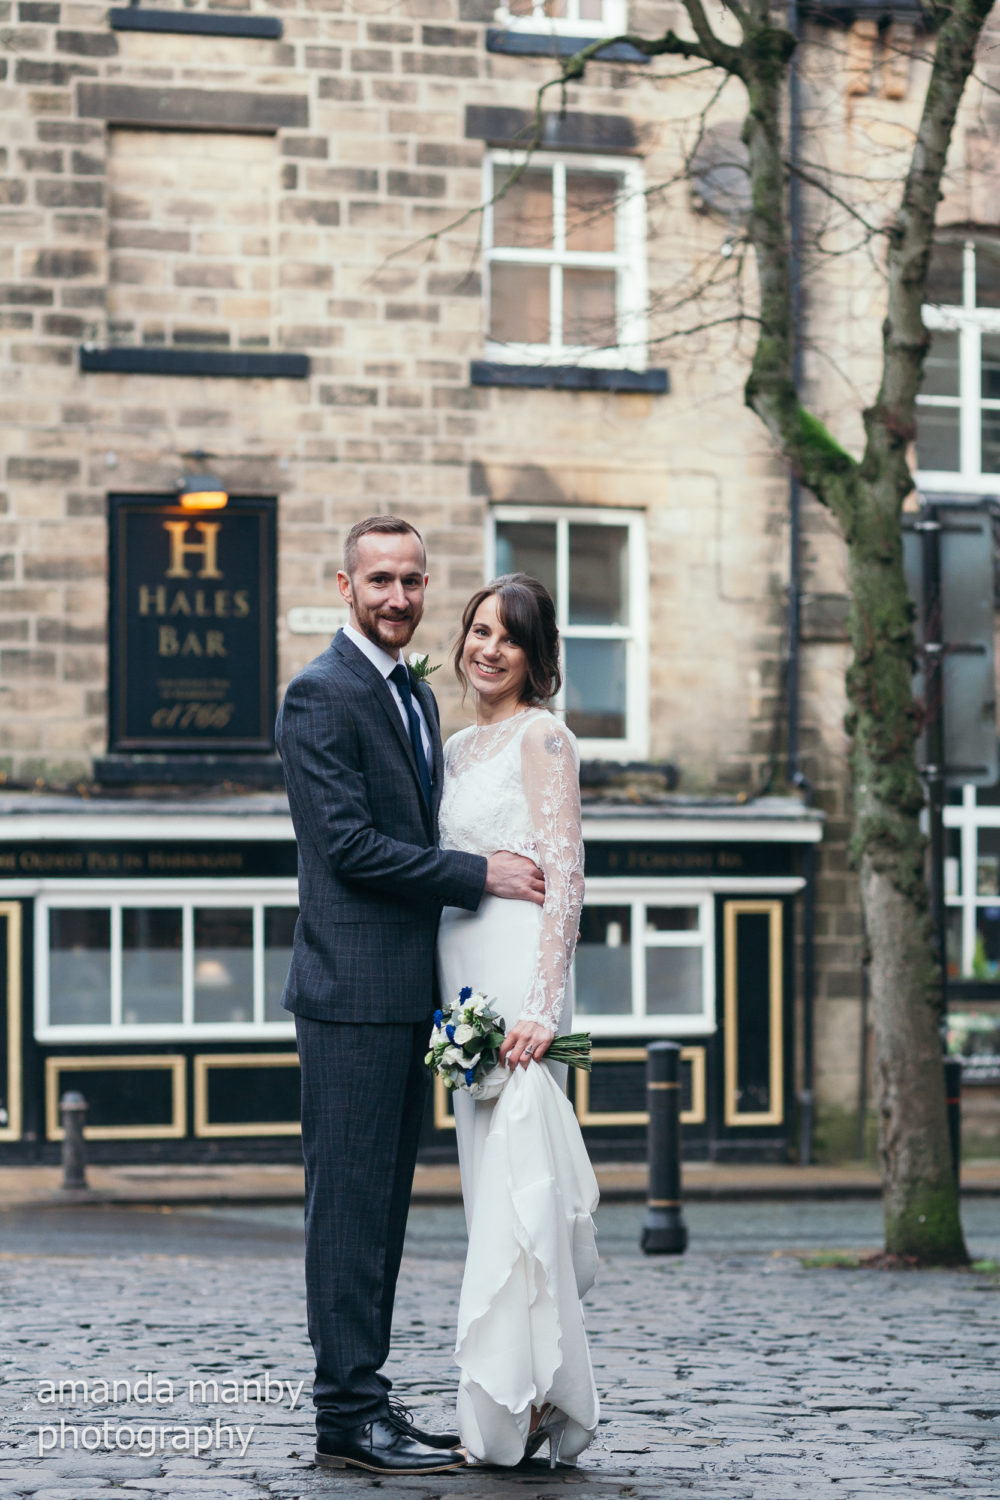 Crown Hotel Harrogate Wedding photographer